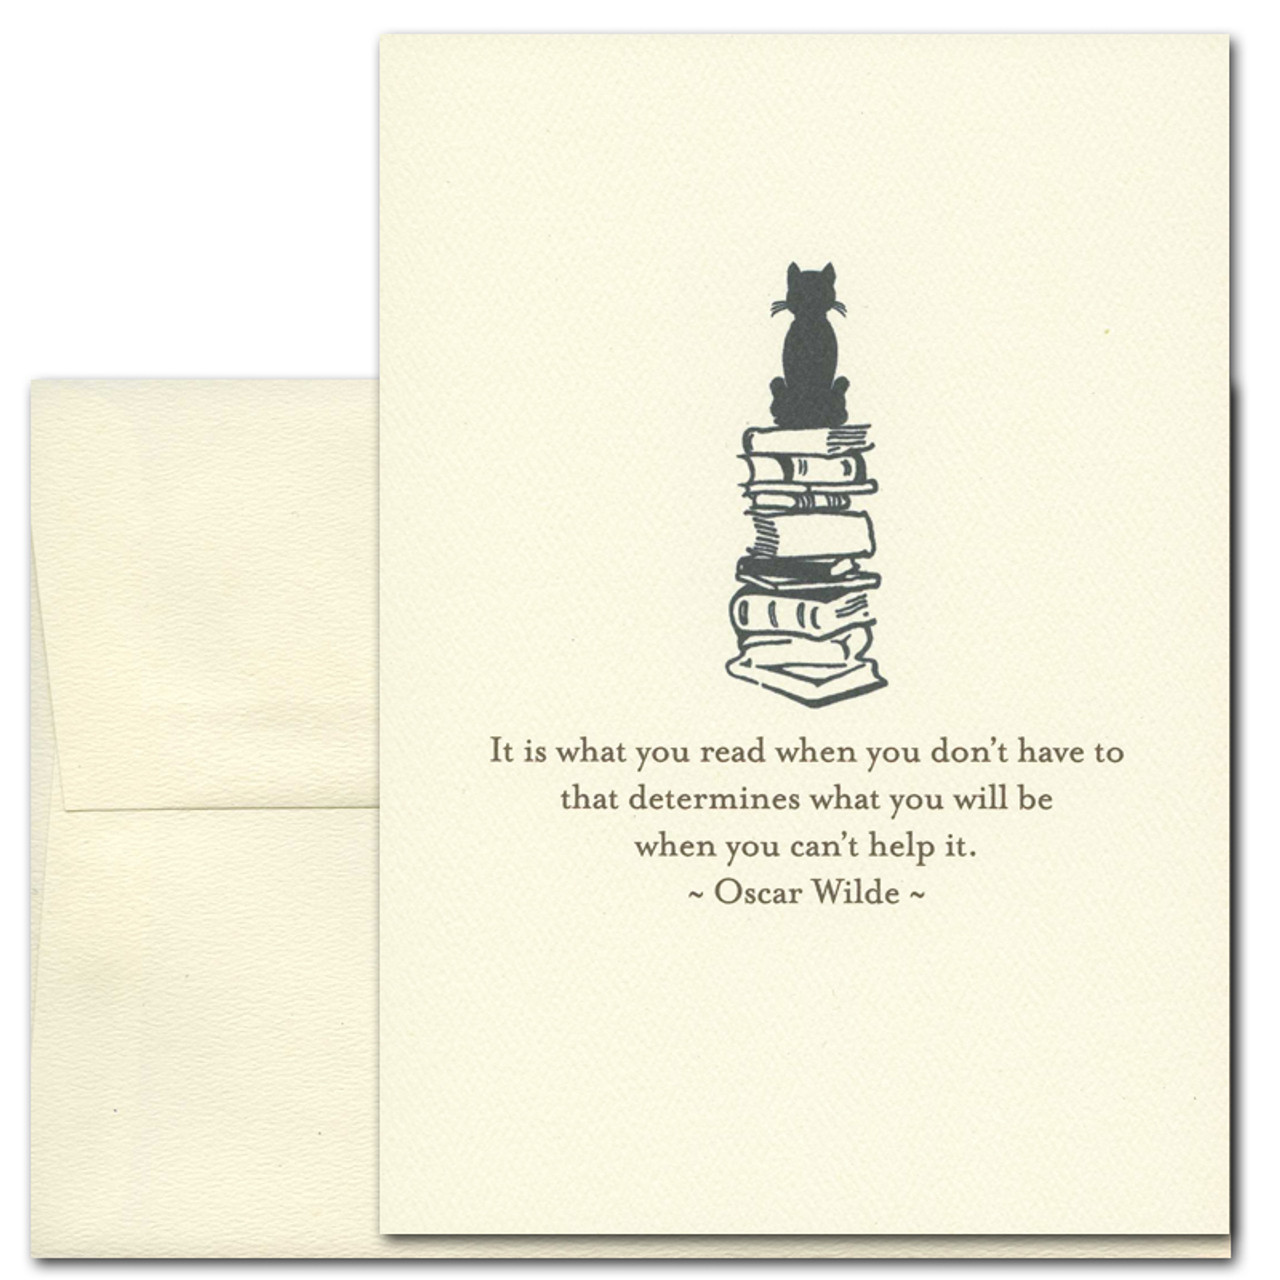 "Quotation Card ""What You Read: Wilde"" Cover shows a vintage style drawing of a cat sitting atop a pile of books with a quote by Oscar Wilde that reads: ""It is what you read when you don't have to that determines what you will be when you can't help it."""